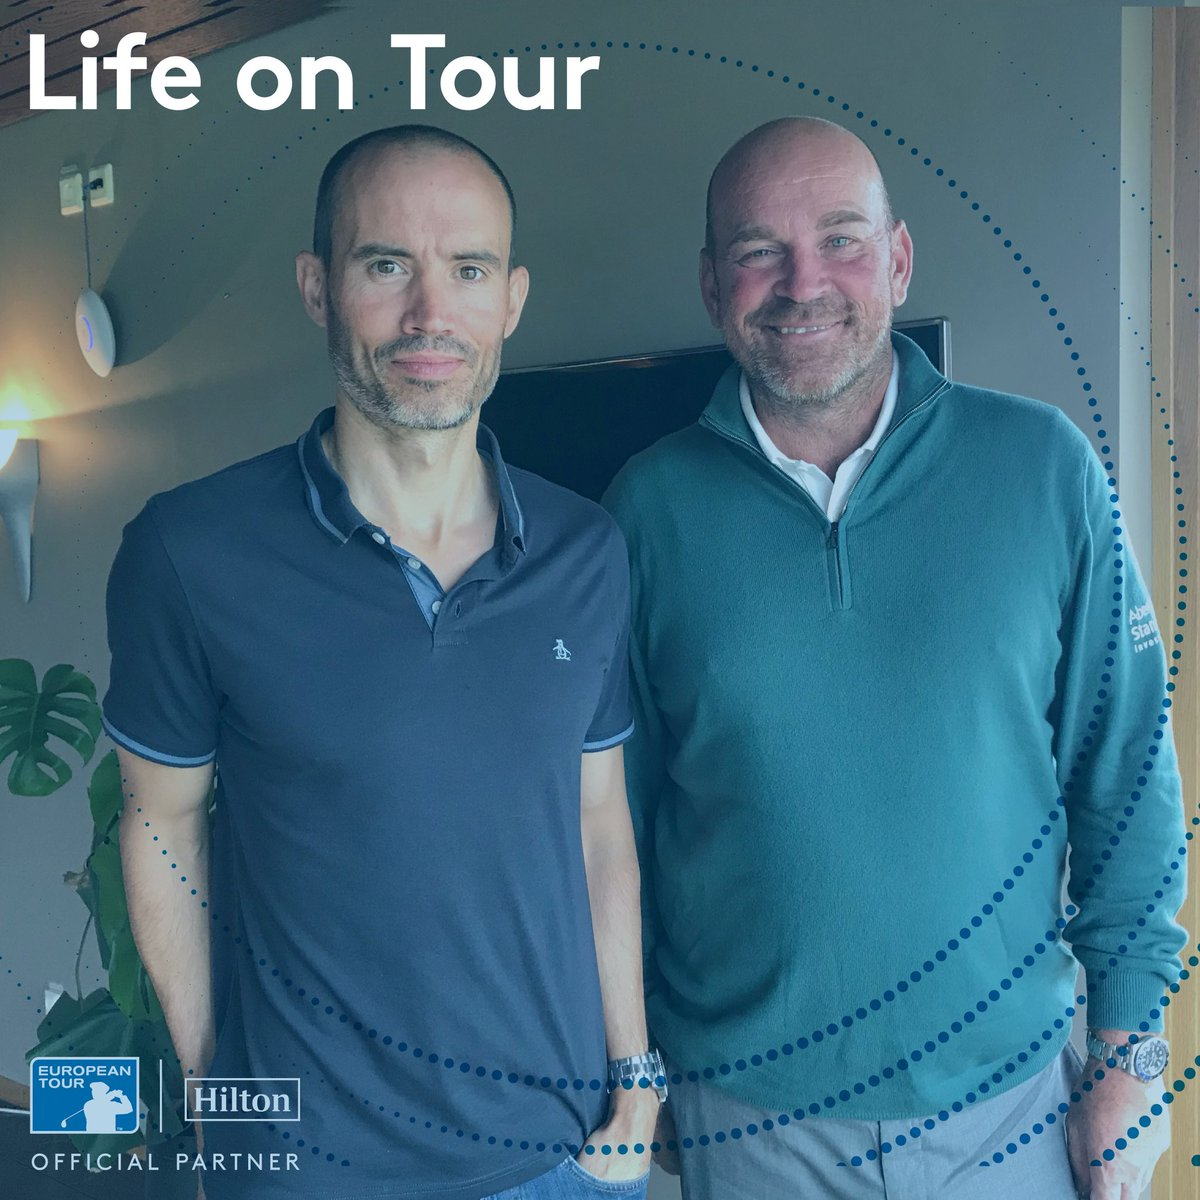 Had fun chatting with @MrAndrewCotter about my @EuropeanTour #LifeOnTour! If you have a spare moment - take a listen! 🎧 europeantour.com/europeantour/n…